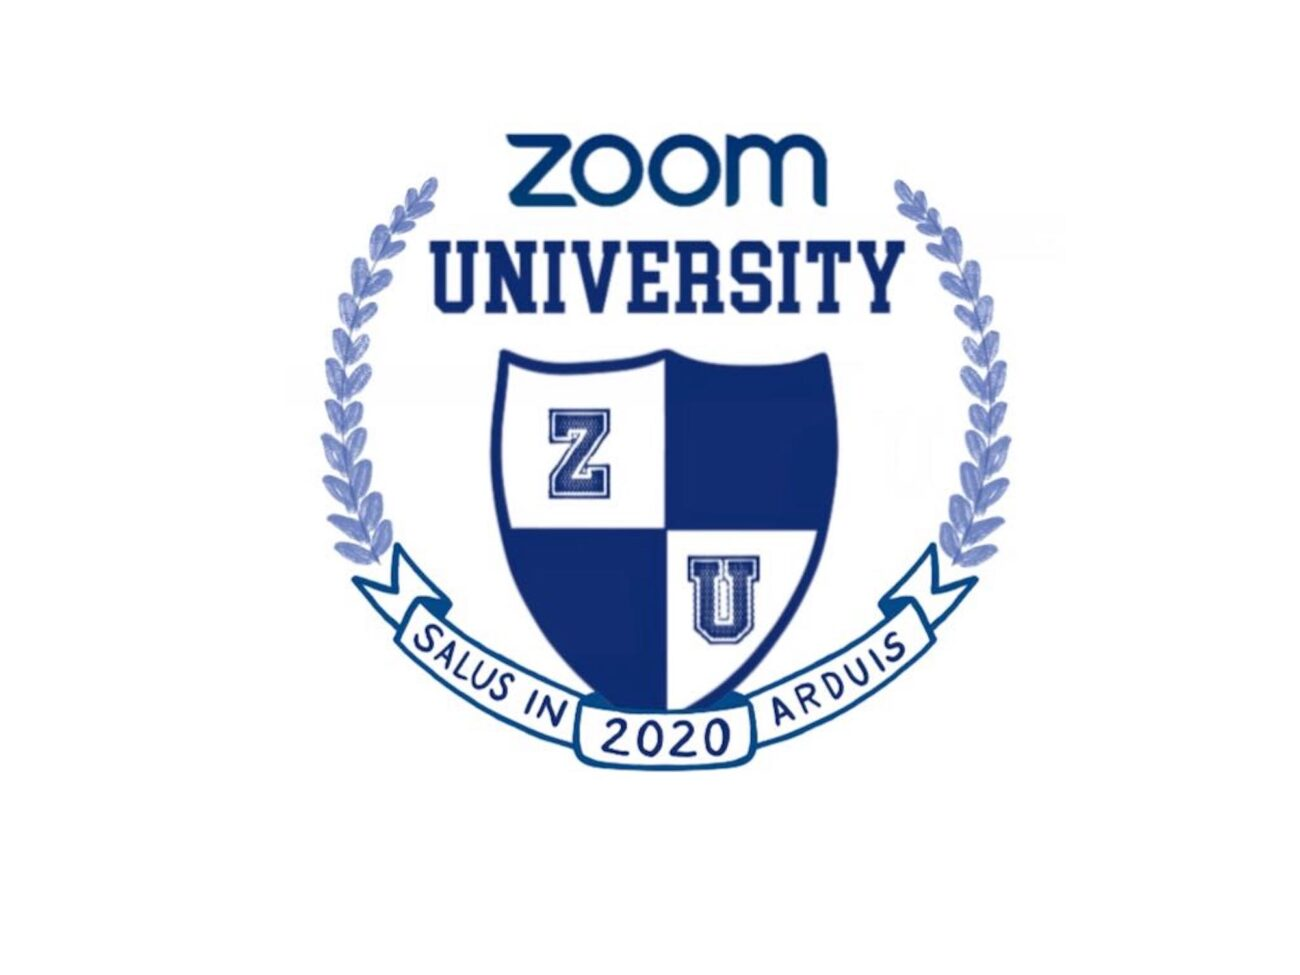 Students of Zoom University, gather around for some of the funniest college memes about being an online student. Welcome to Zoomiversity!